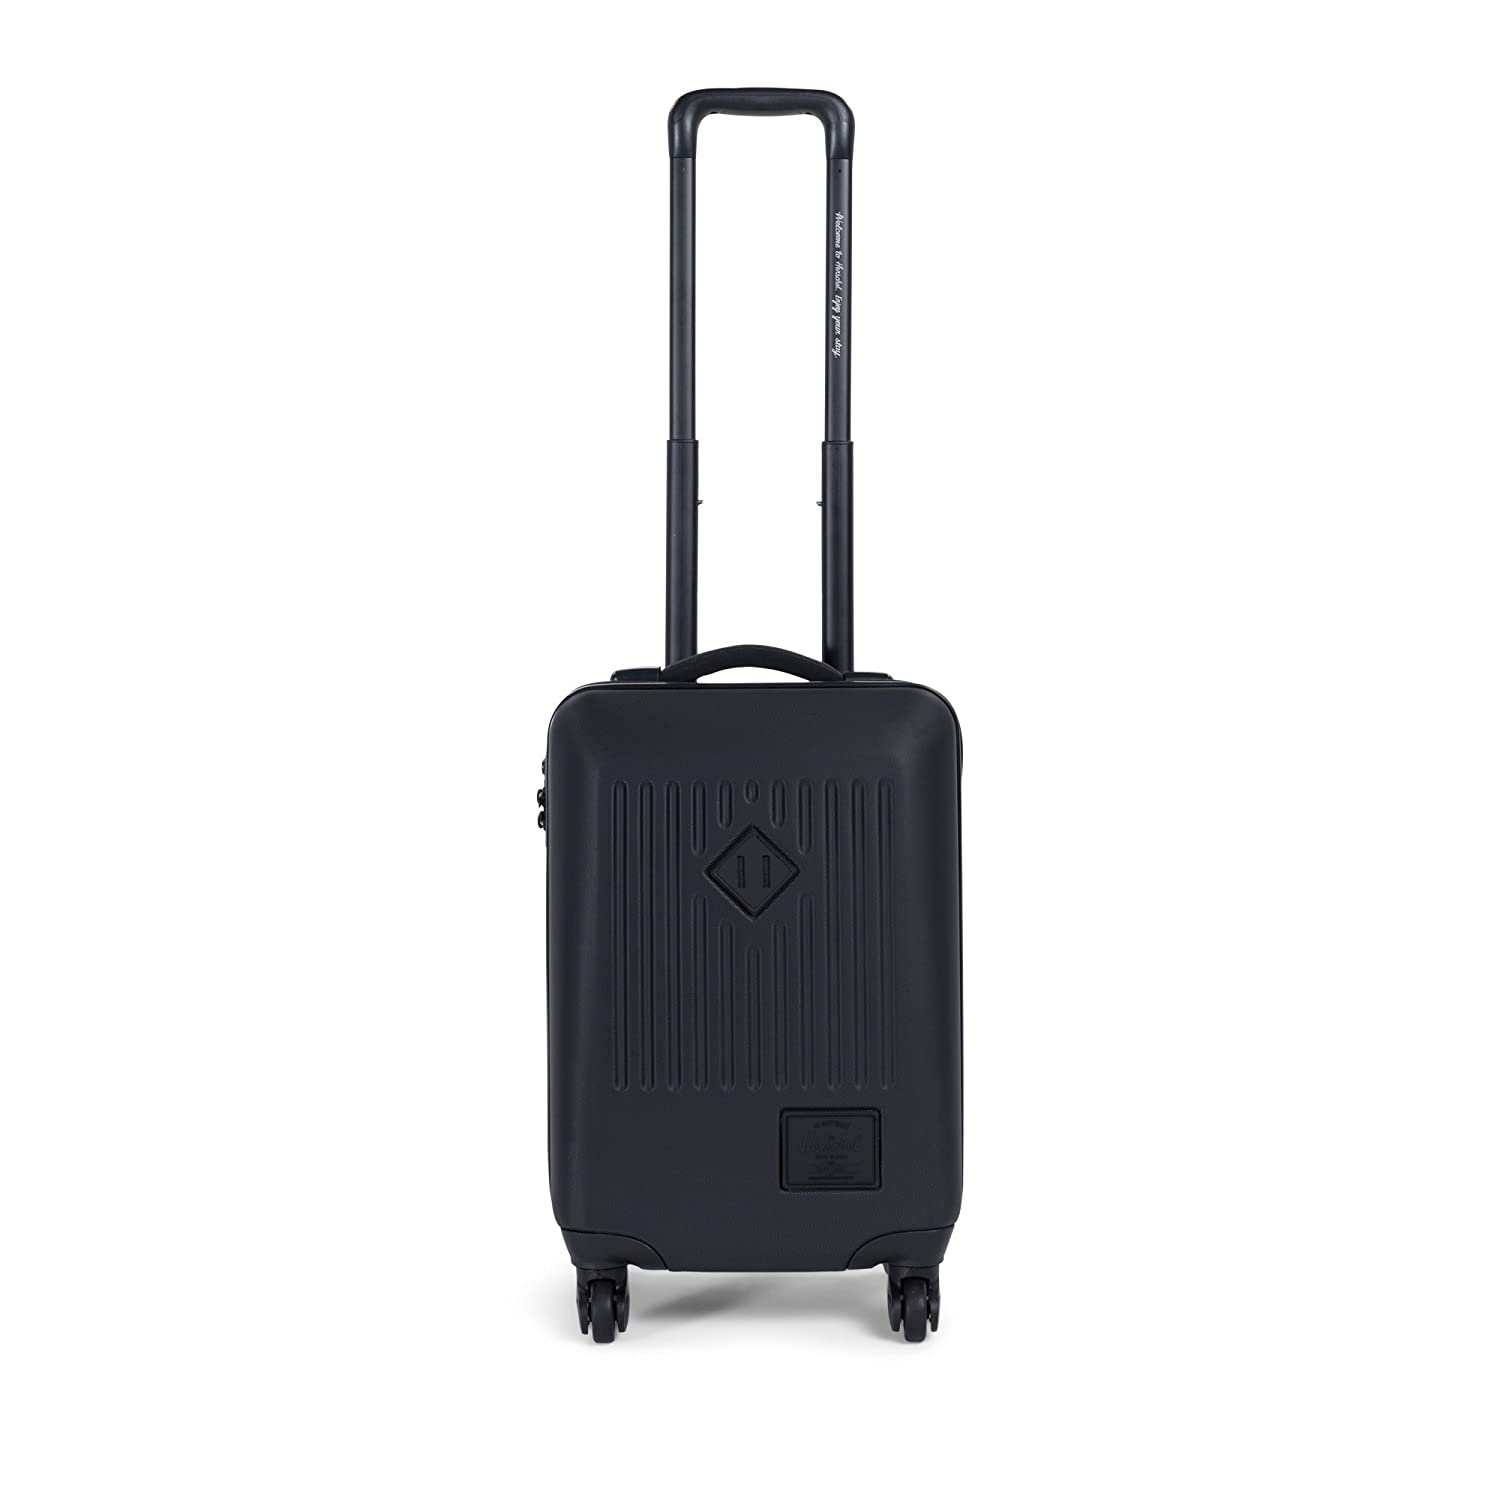 The Herschel Trade Carry On, Black travel product recommended by Alexandra Tran on Lifney.